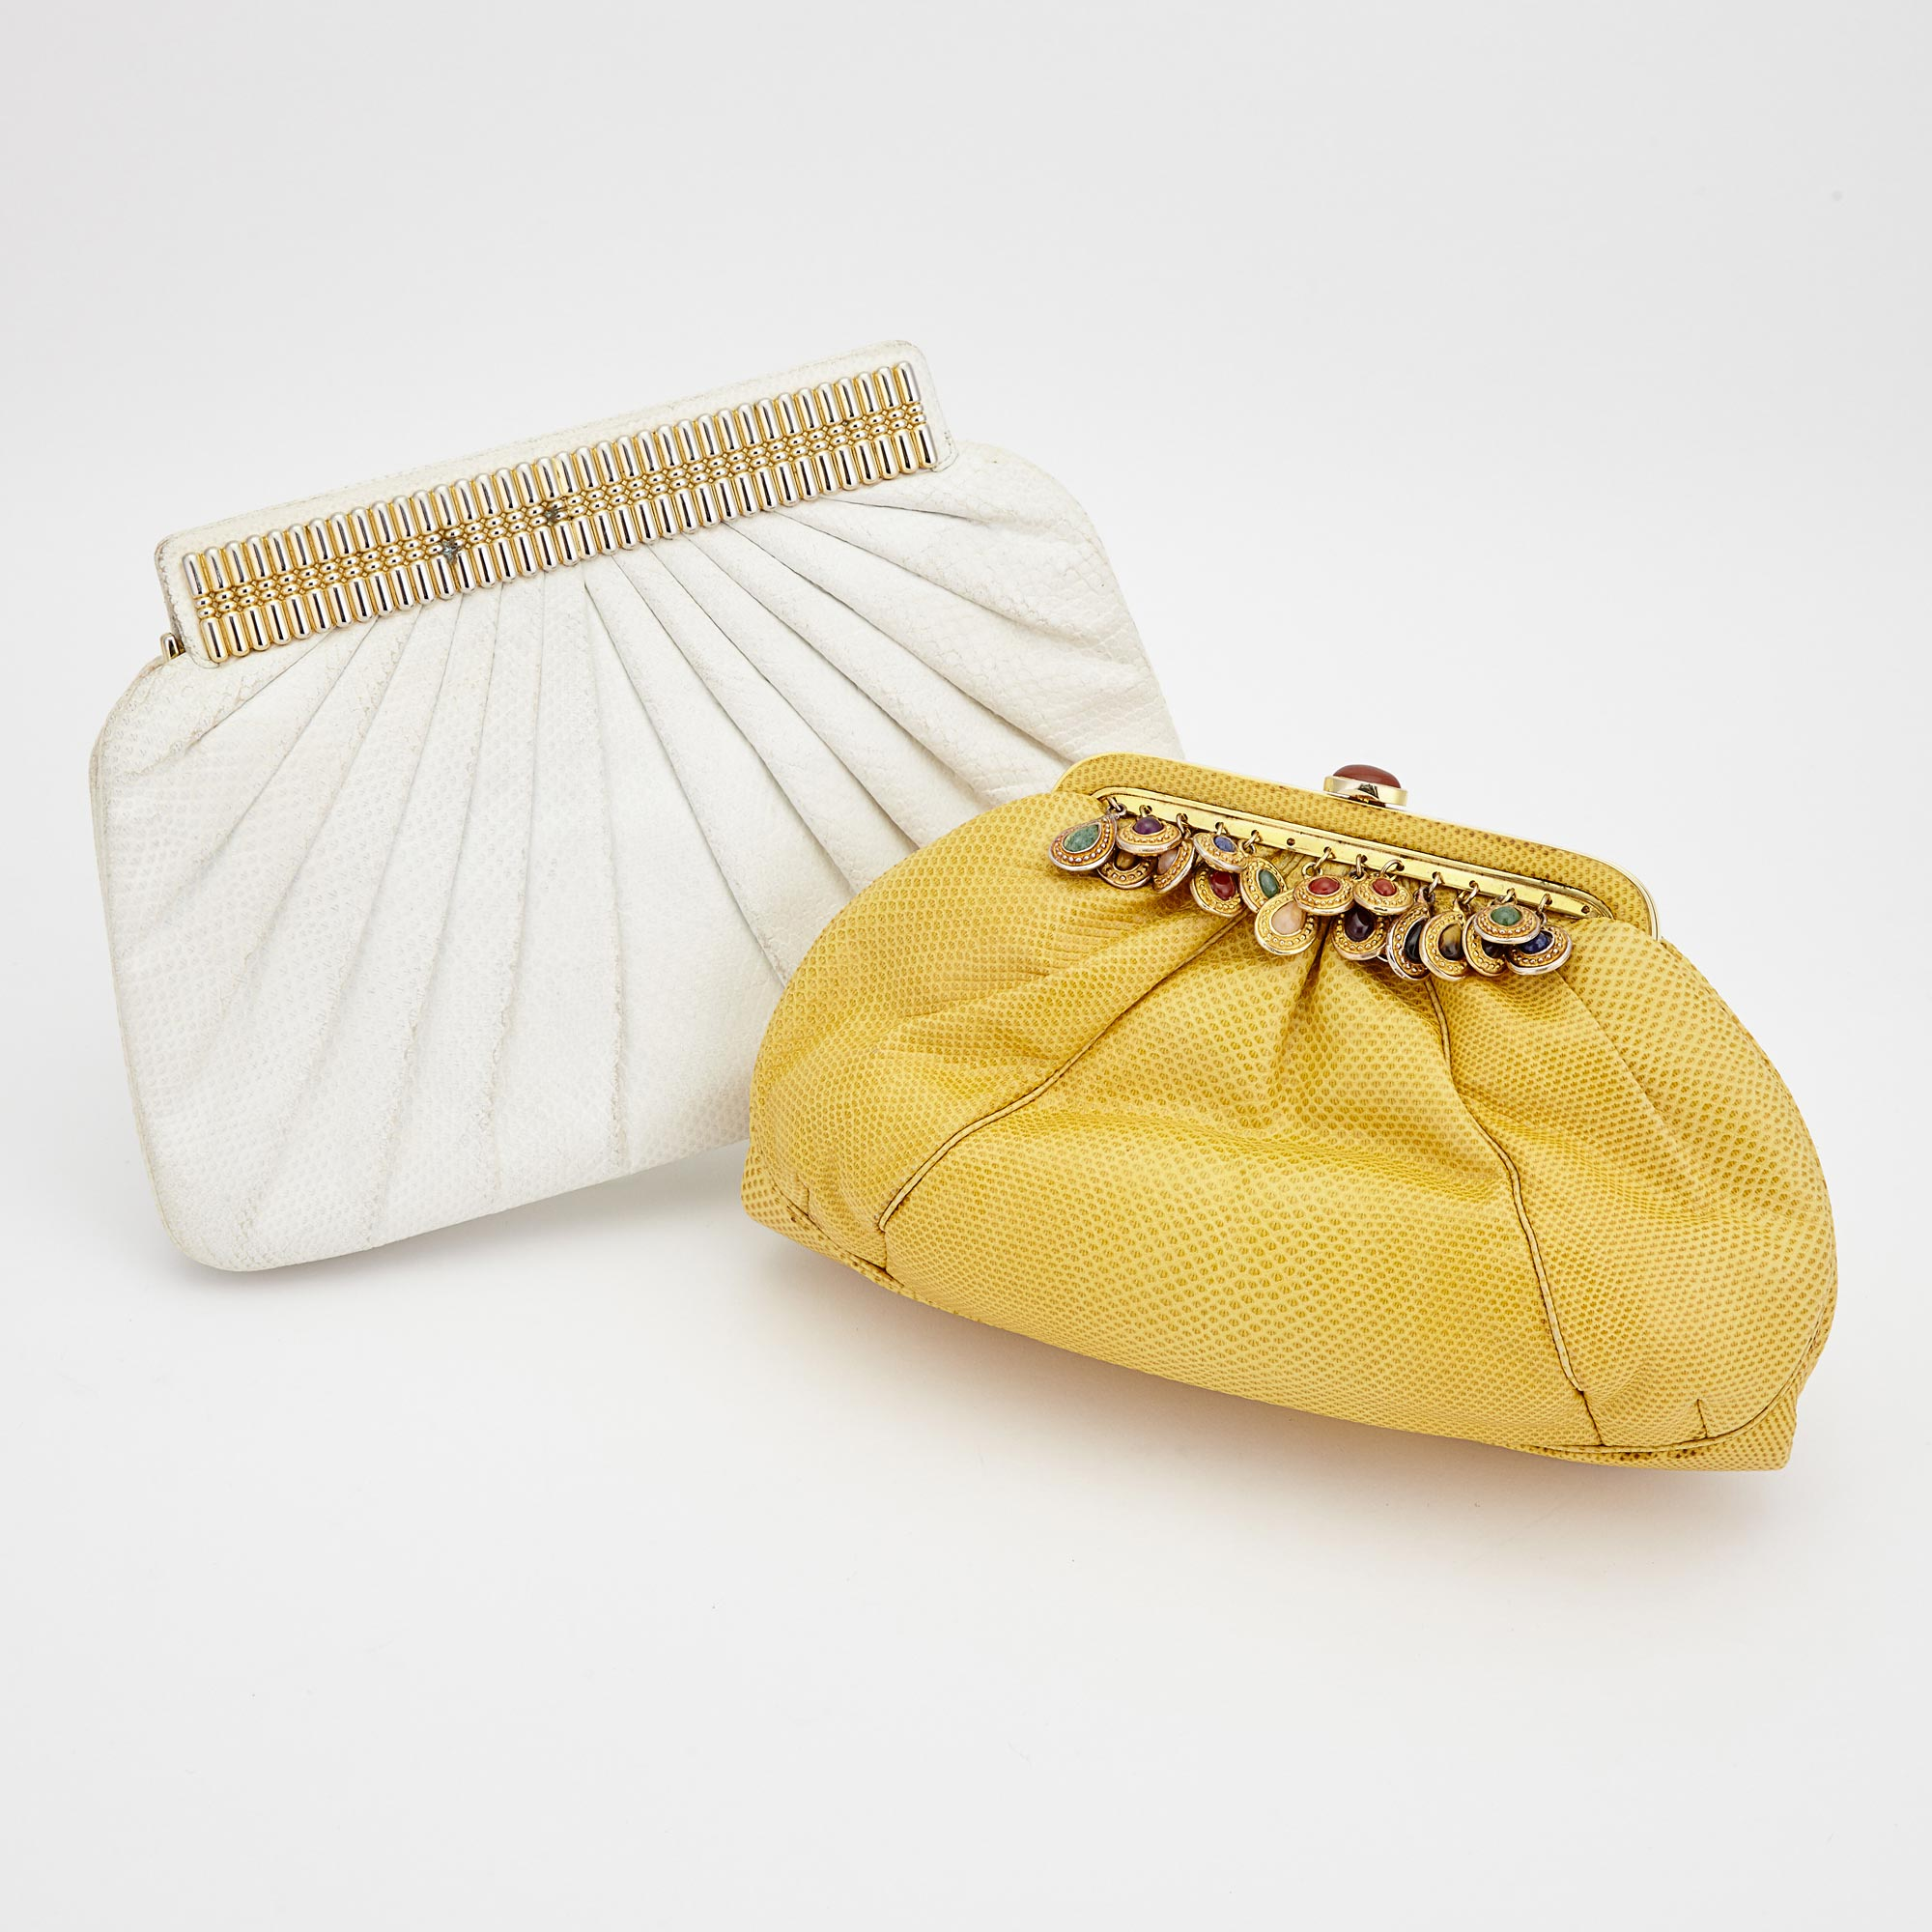 Lot image - Two White and Yellow Leather Evening Bags, Judith Leiber